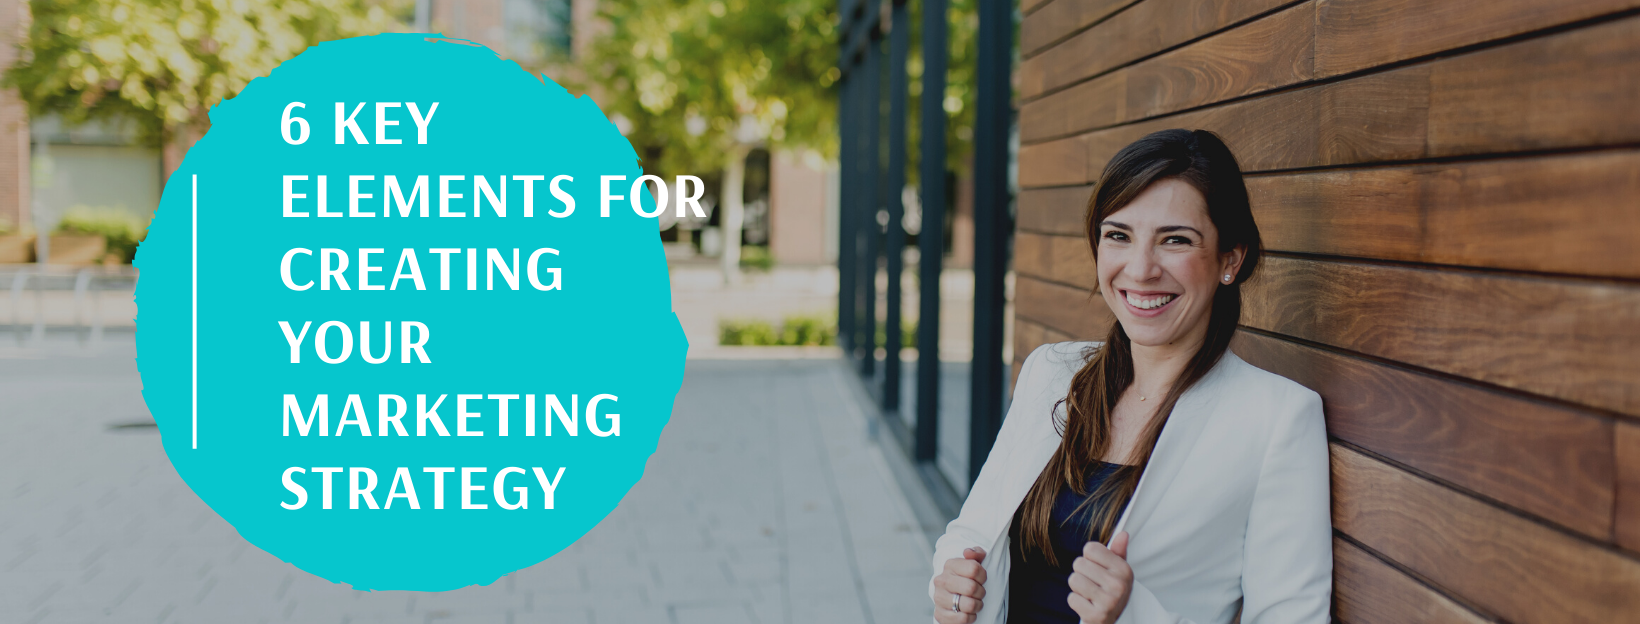 6 key elements for creating your marketing strategy